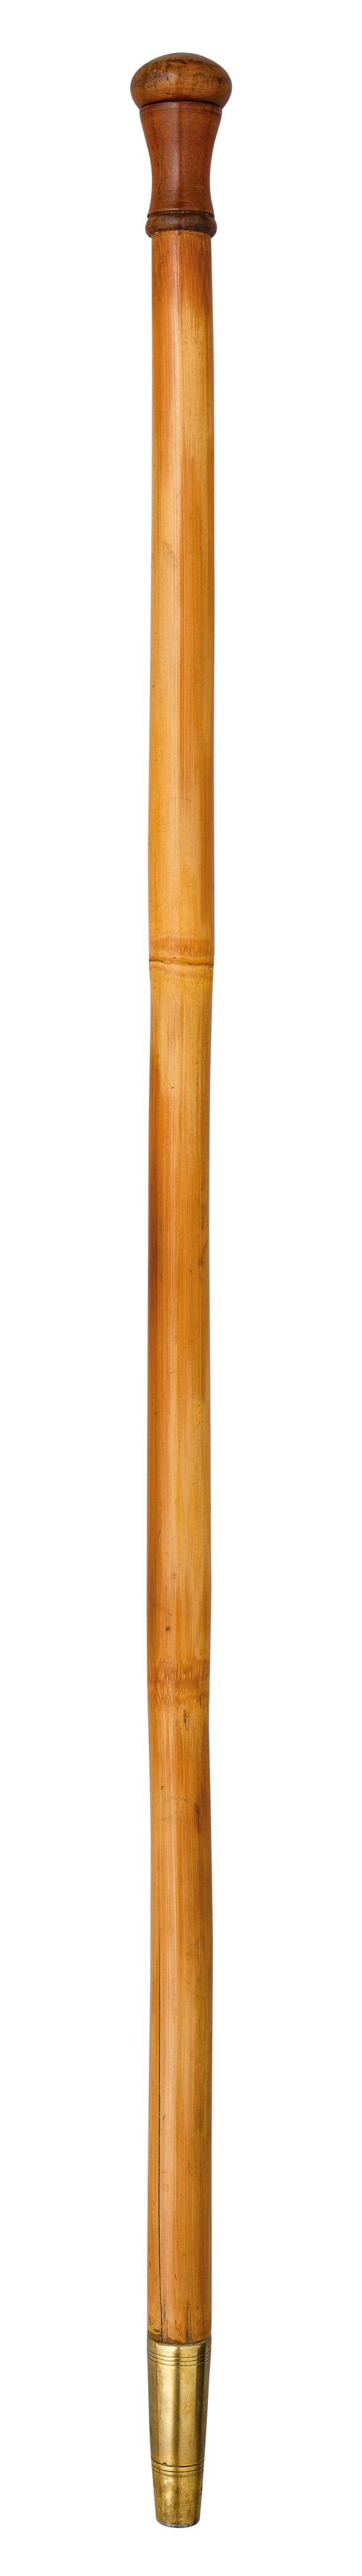 Ⓦ A VICTORIAN WALKING STICK BLOW TUBE^ LAST QUARTER OF THE 19TH CENTURY